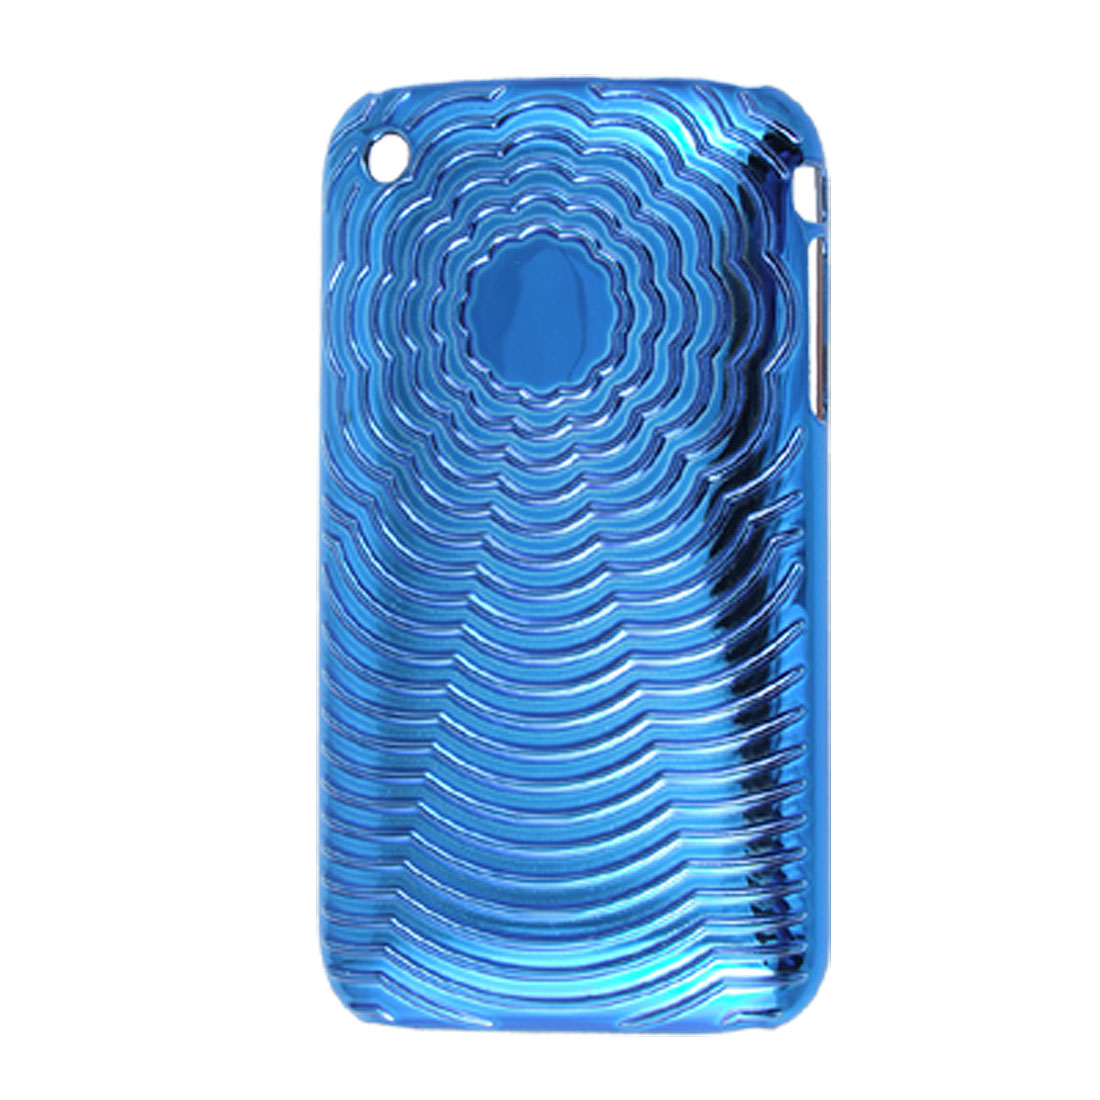 Blue External Antislip Hard Plastic Back Case Cover Skin for iPhone 3GS 3G